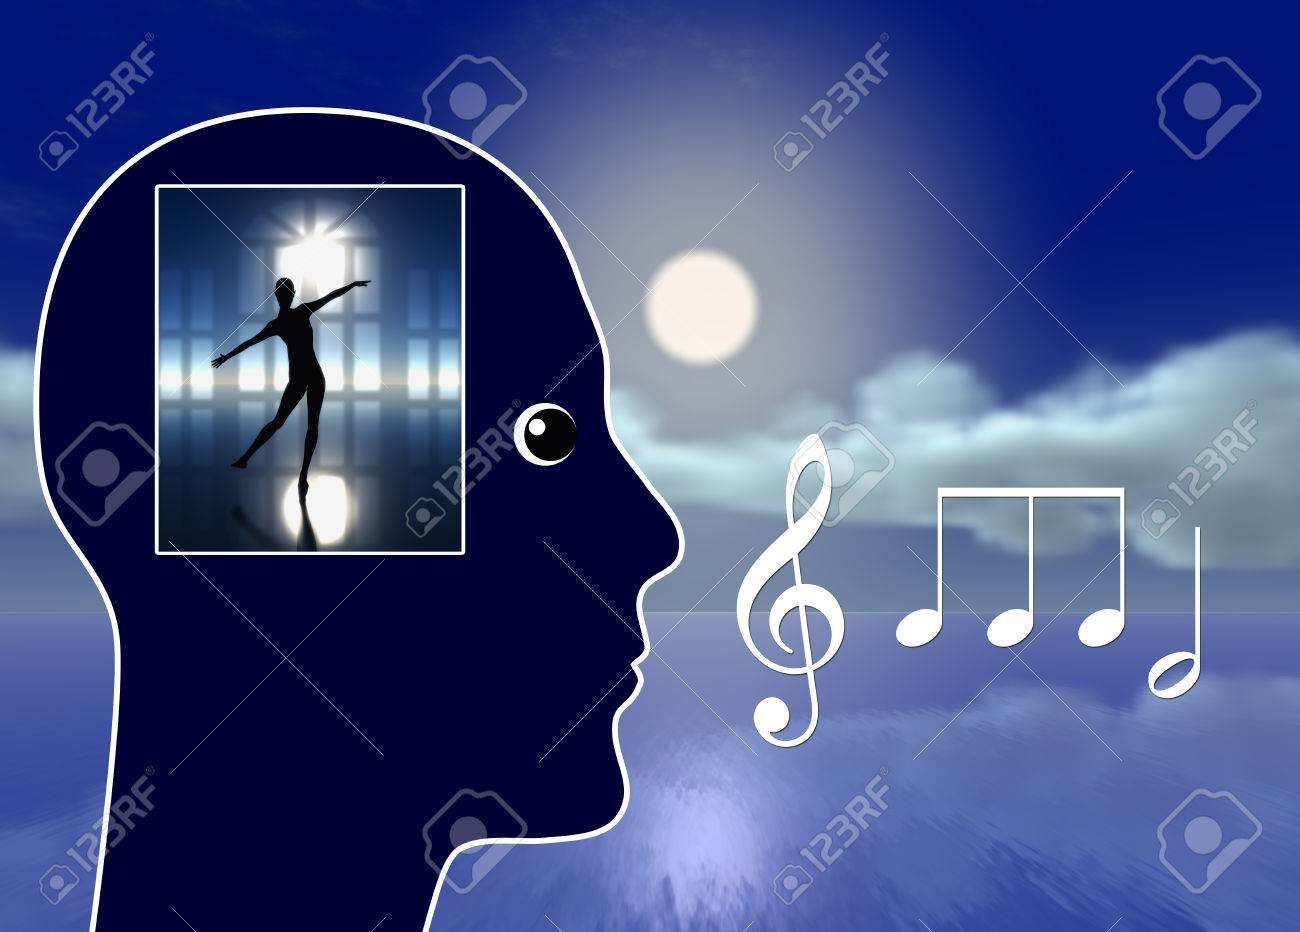 Music Make You Dream. Classical music leading to lucid dreaming, relaxation and stress reduction - 43398656